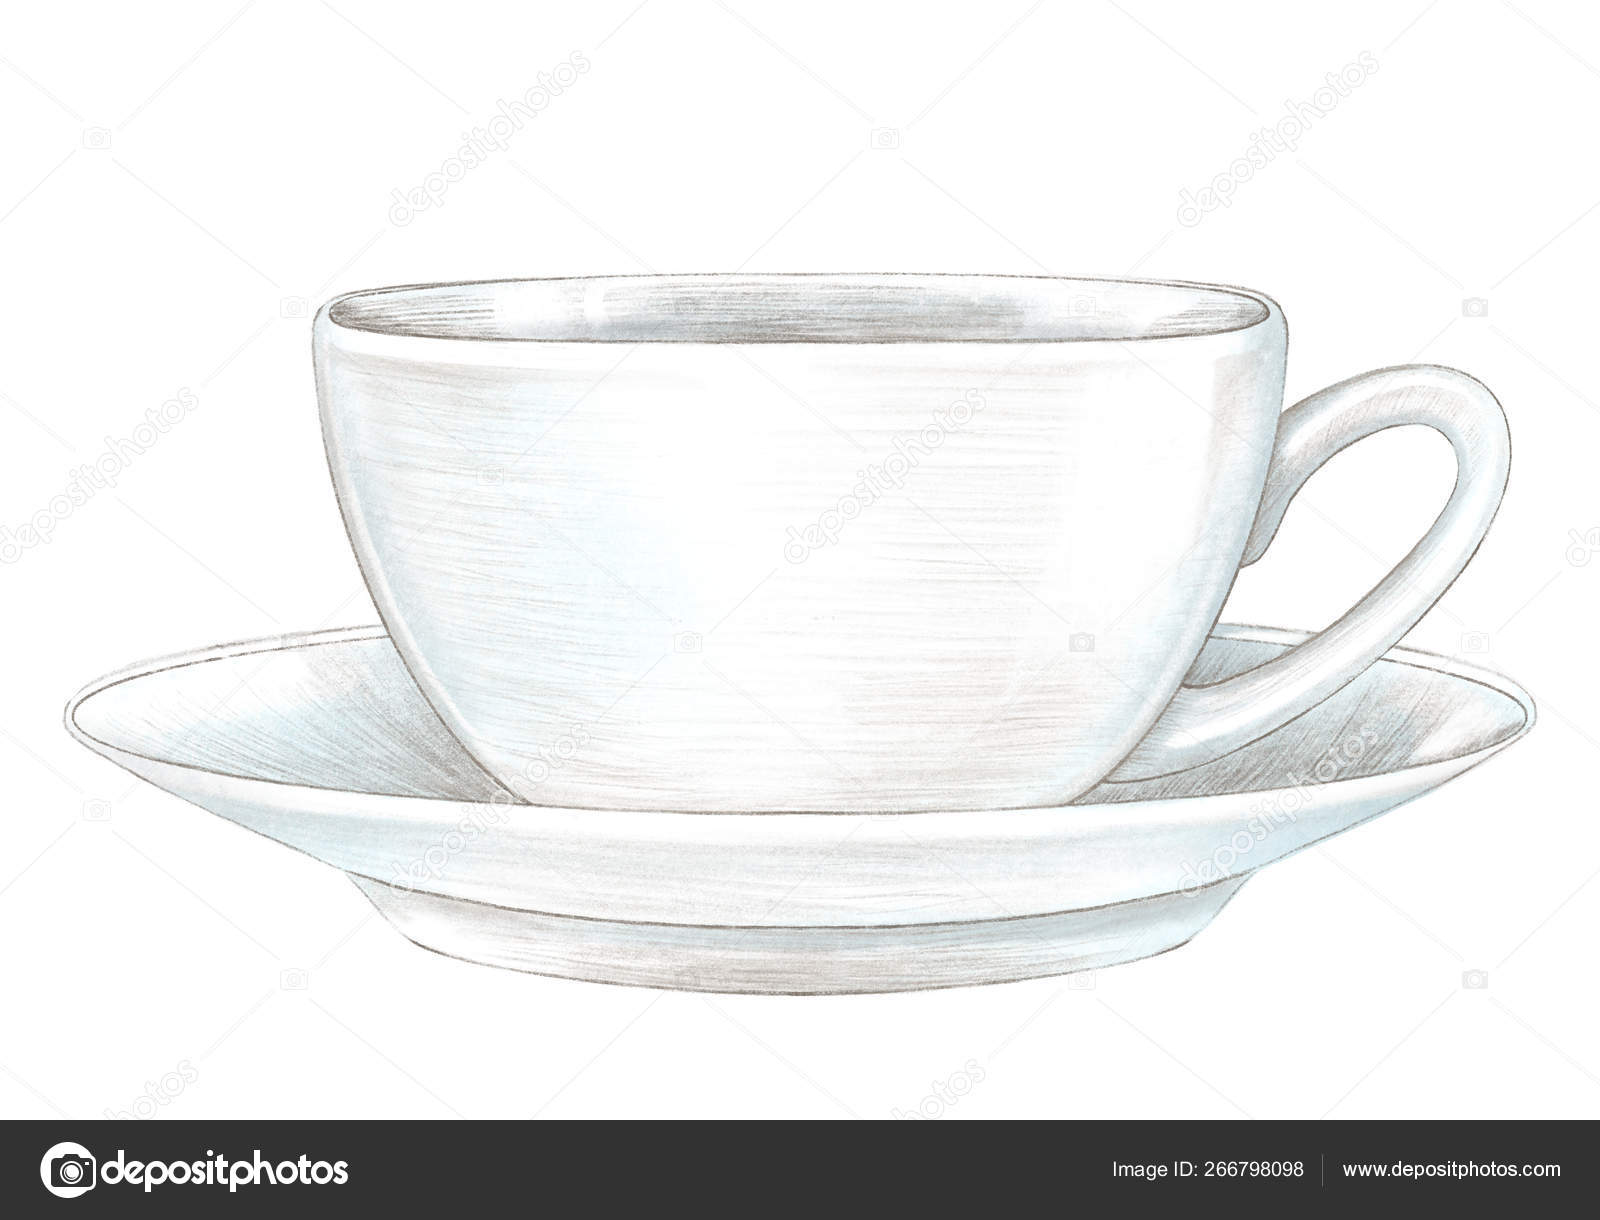 Pencil Drawing With Light Cup With Hot Drink On Saucer Stock Photo Image By C Mimomy 266798098